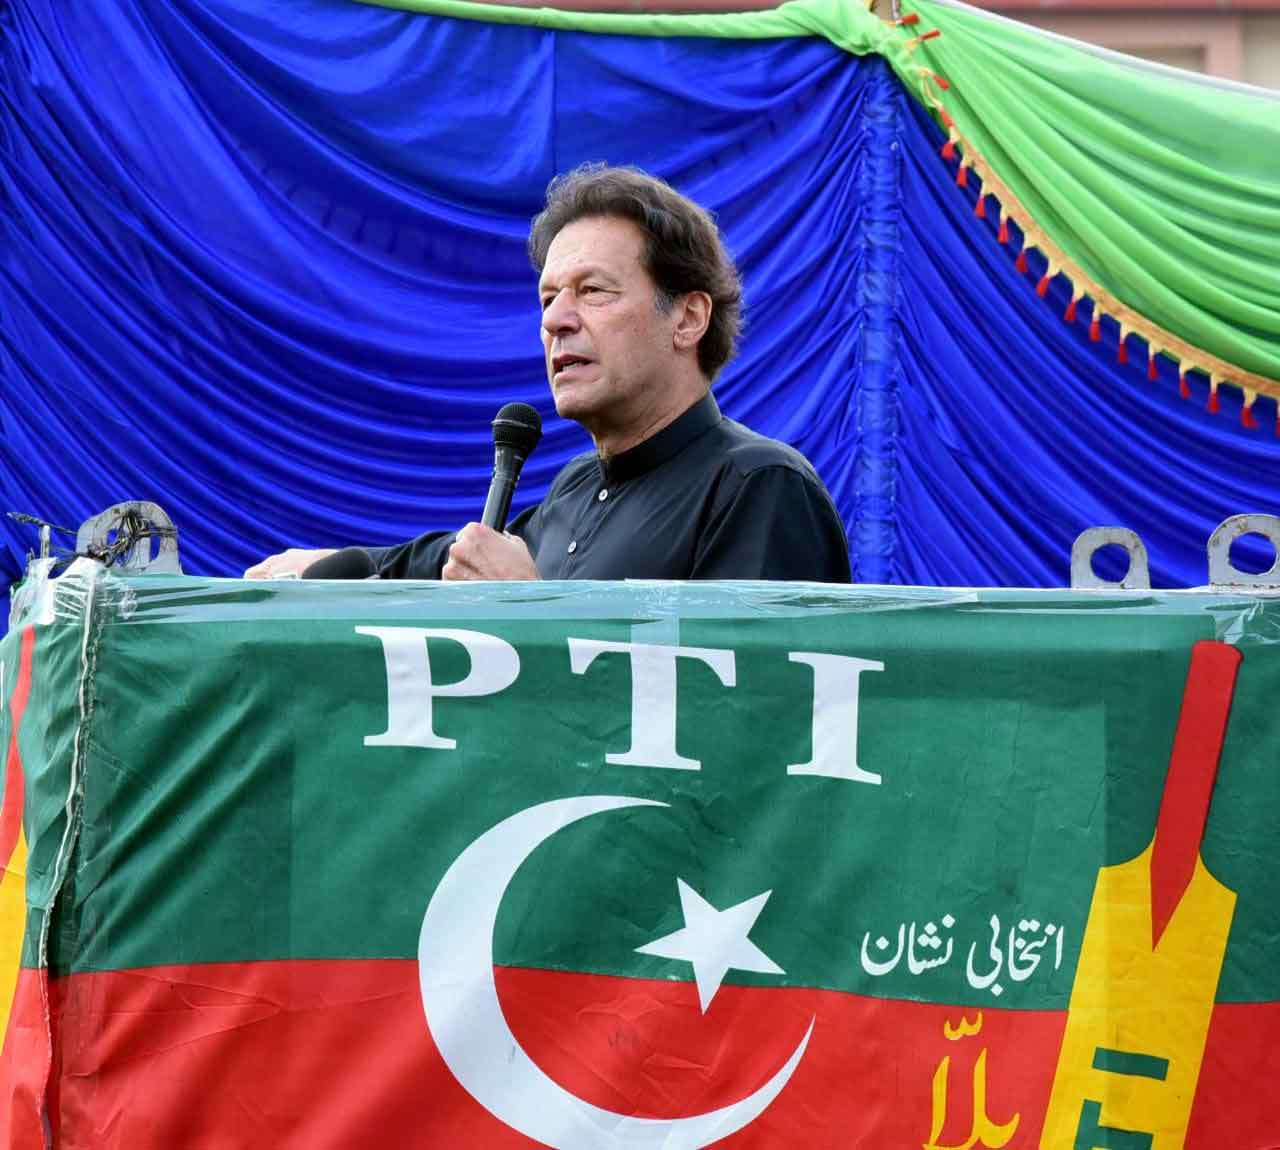 Prime Minister Imran Khan addressing an election campaign rally in Tarar Khel, Azad Jammu and Kashmir, on July 23, 2021. — PTI